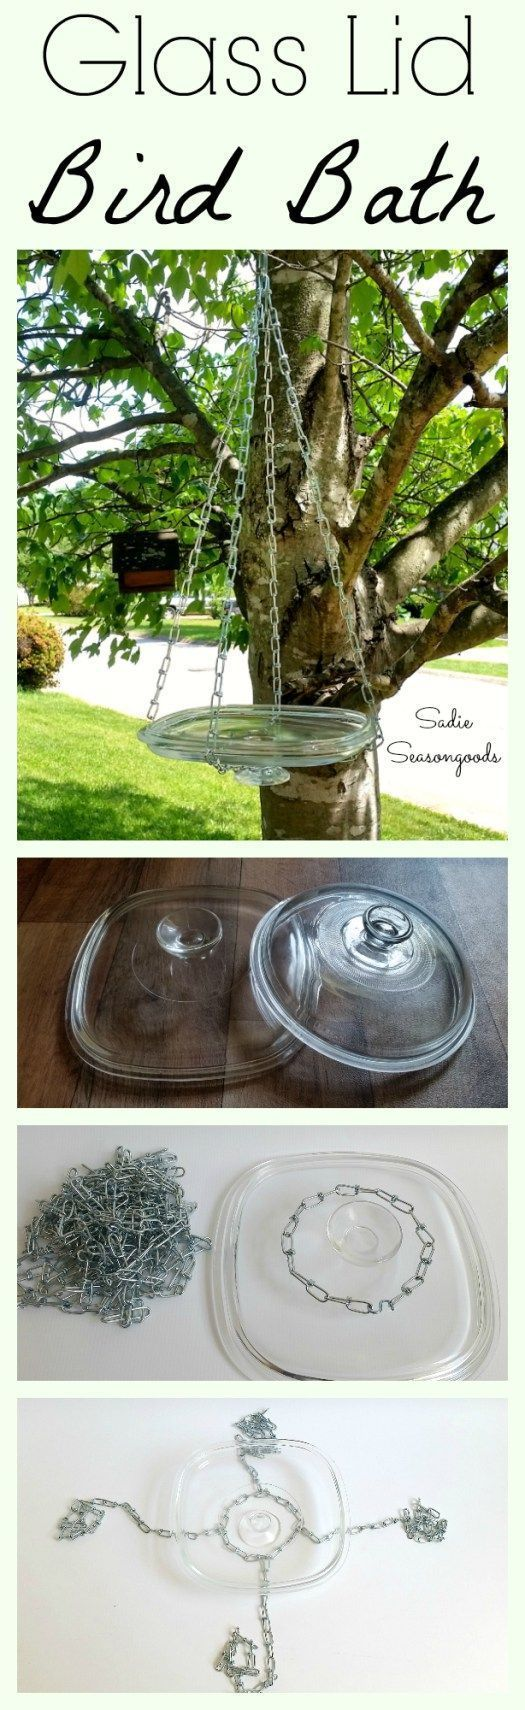 Unique bird baths diy bird bath ideas - A Glass Casserole Dish Lid From The Thrift Store Is The Perfect Piece To Repurpose And Upcycle Into A Bird Bath Or Waterer From Which They Can Drink